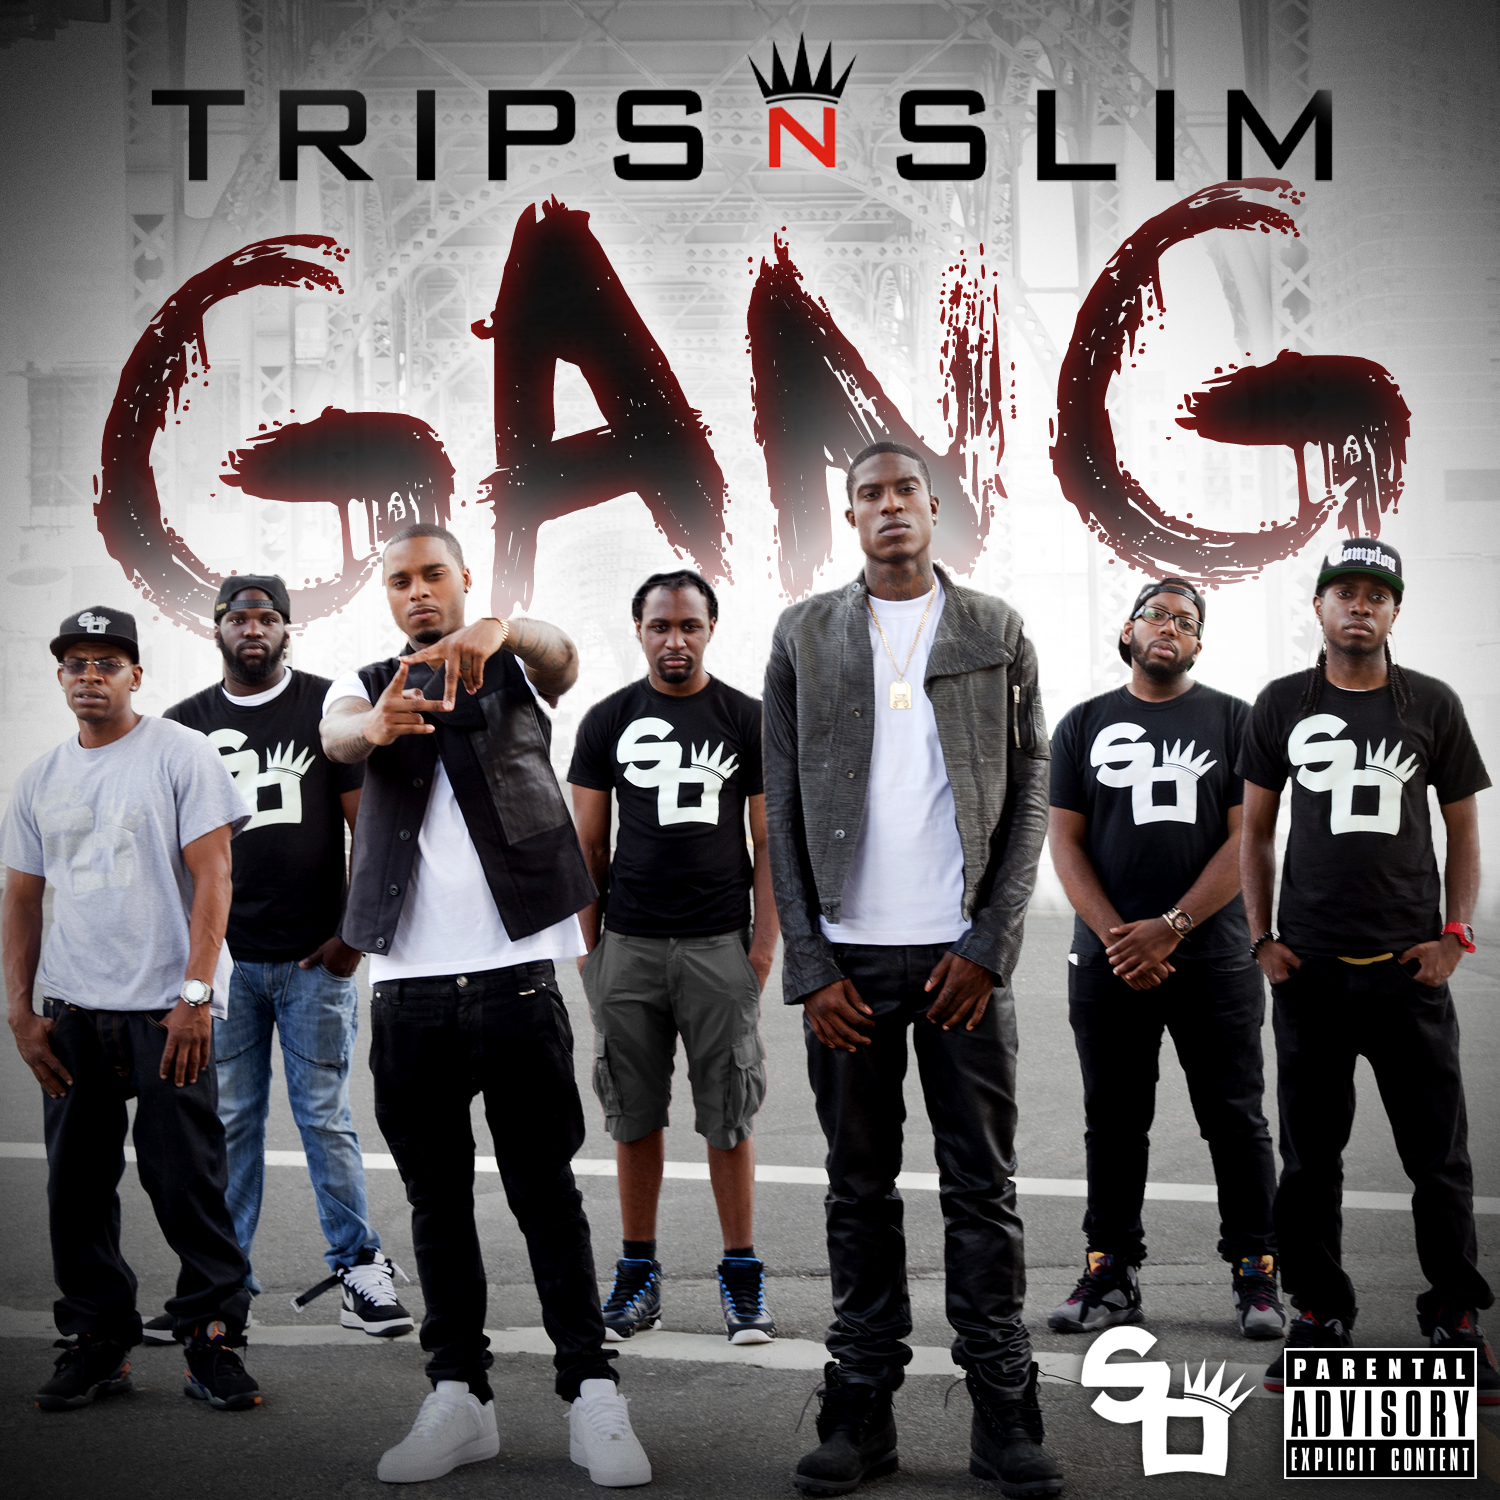 Trips n slim gang hiphop n more - Gang gang ...